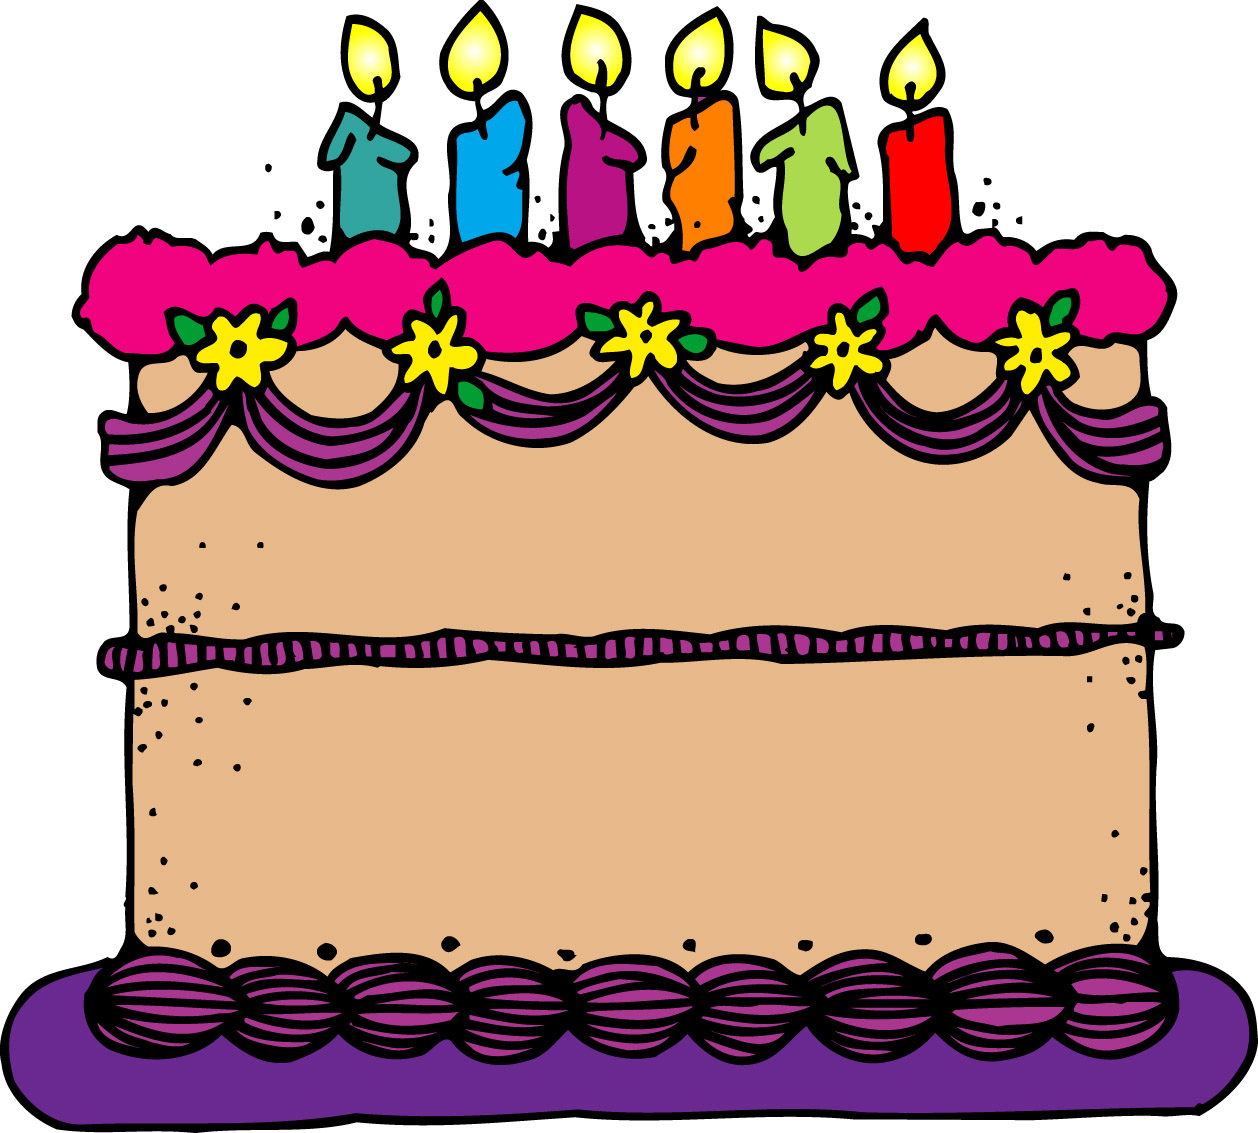 75 images of Birthday Cake Free Clip Art . You can use these free ...